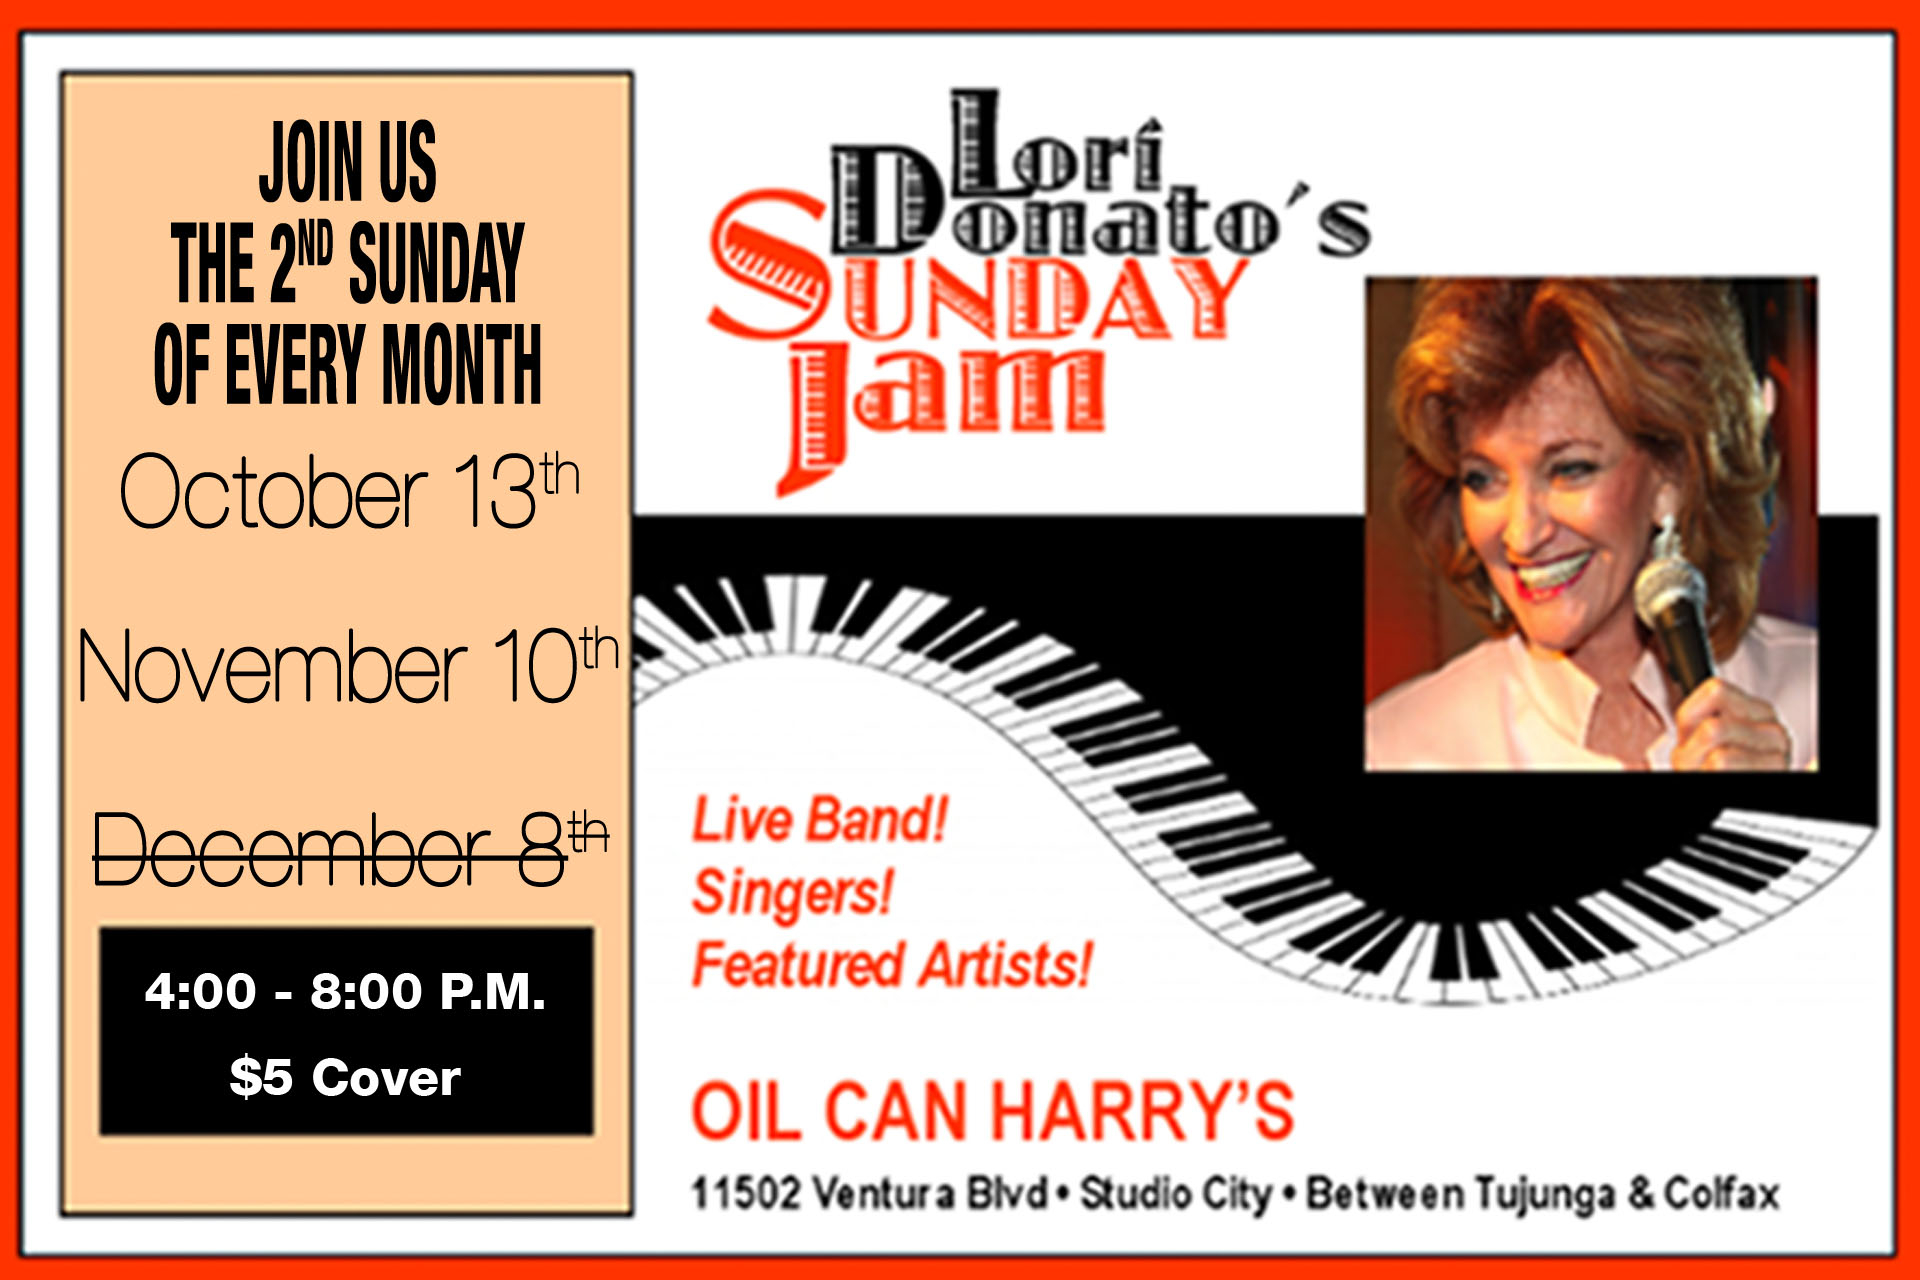 Oil Can Harry's Presents Lori Donato's Sunday Jam! Now the 2nd Sunday of every month! October 13th, November 10th & December 8th, 2019! 4:00 to 8:00 PM. $5 cover.